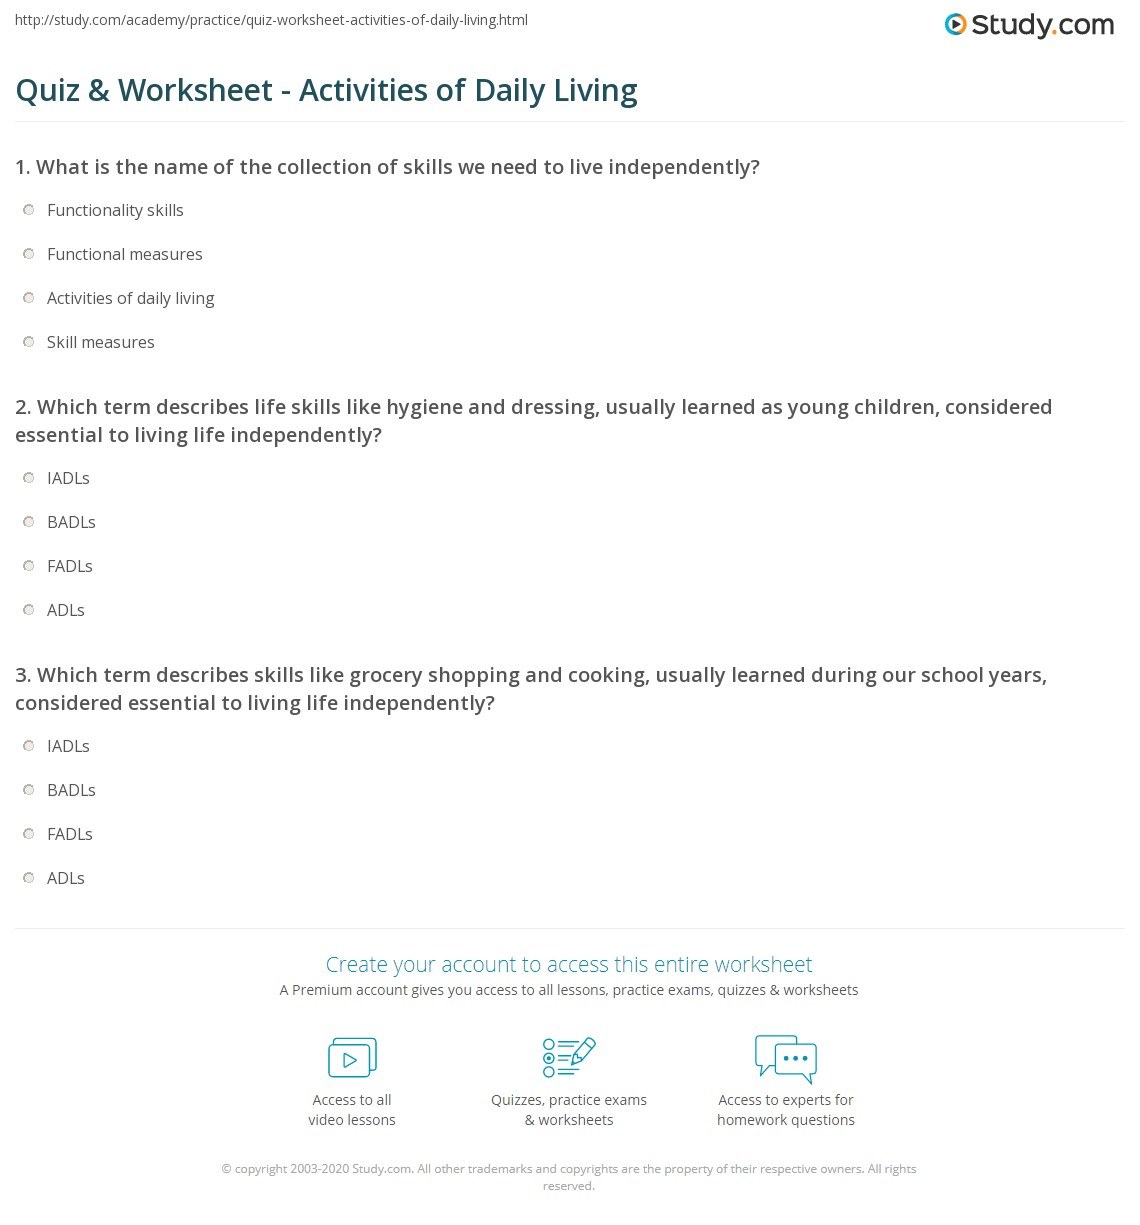 Worksheets Free Independent Living Skills Worksheets quiz worksheet activities of daily living study com which term describes life skills like hygiene and dressing usually learned as young children considered essential to independen